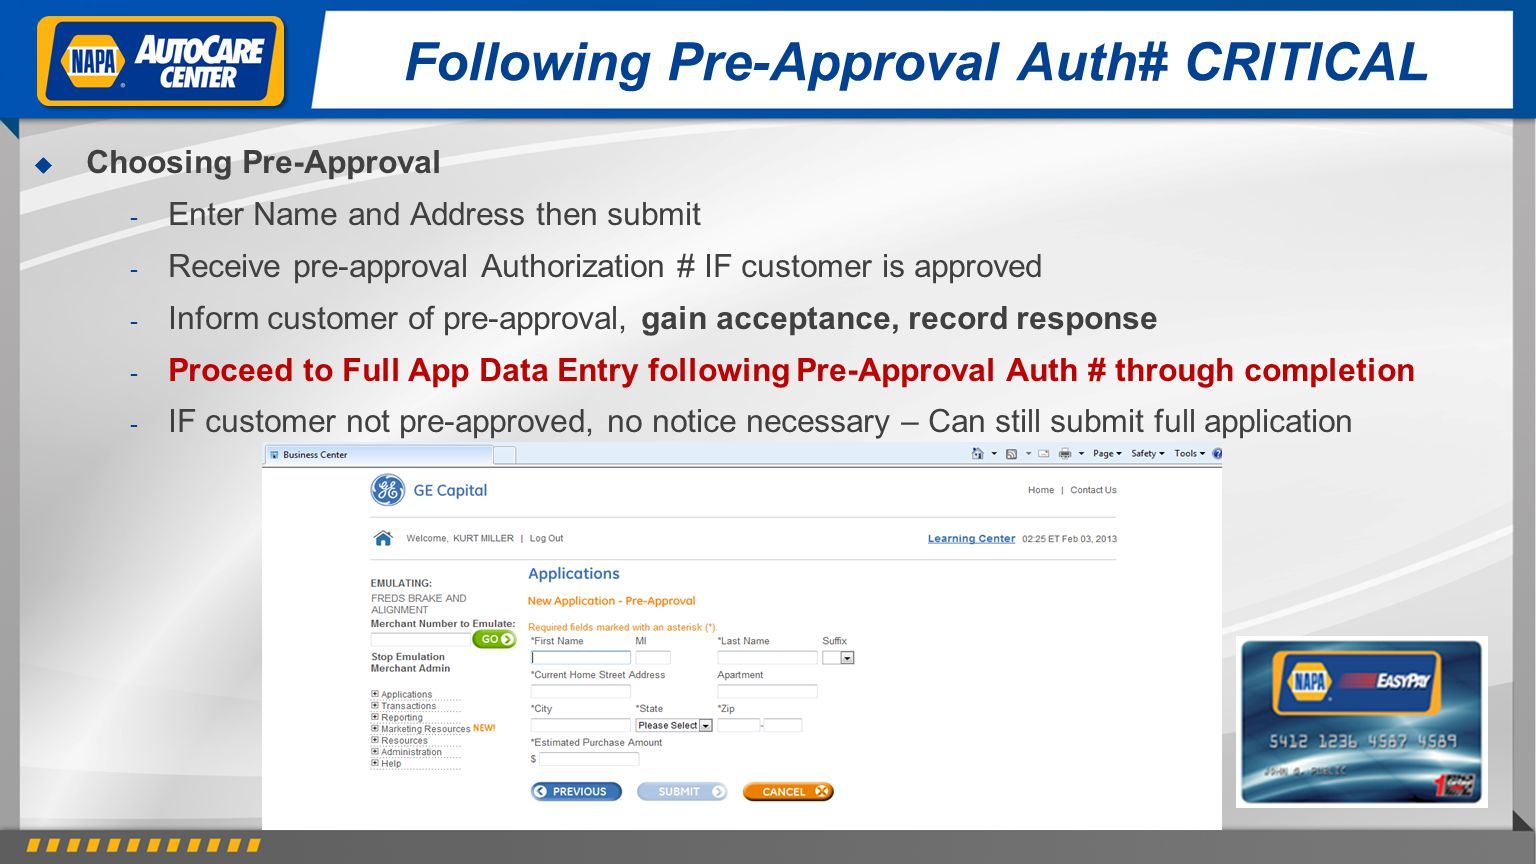 Following Pre-Approval Auth# CRITICAL Choosing Pre-Approval - Enter Name and Address then submit - Receive pre-approval Authorization # IF customer is approved - Inform customer of pre-approval, gain acceptance, record response - Proceed to Full App Data Entry following Pre-Approval Auth # through completion - IF customer not pre-approved, no notice necessary – Can still submit full application